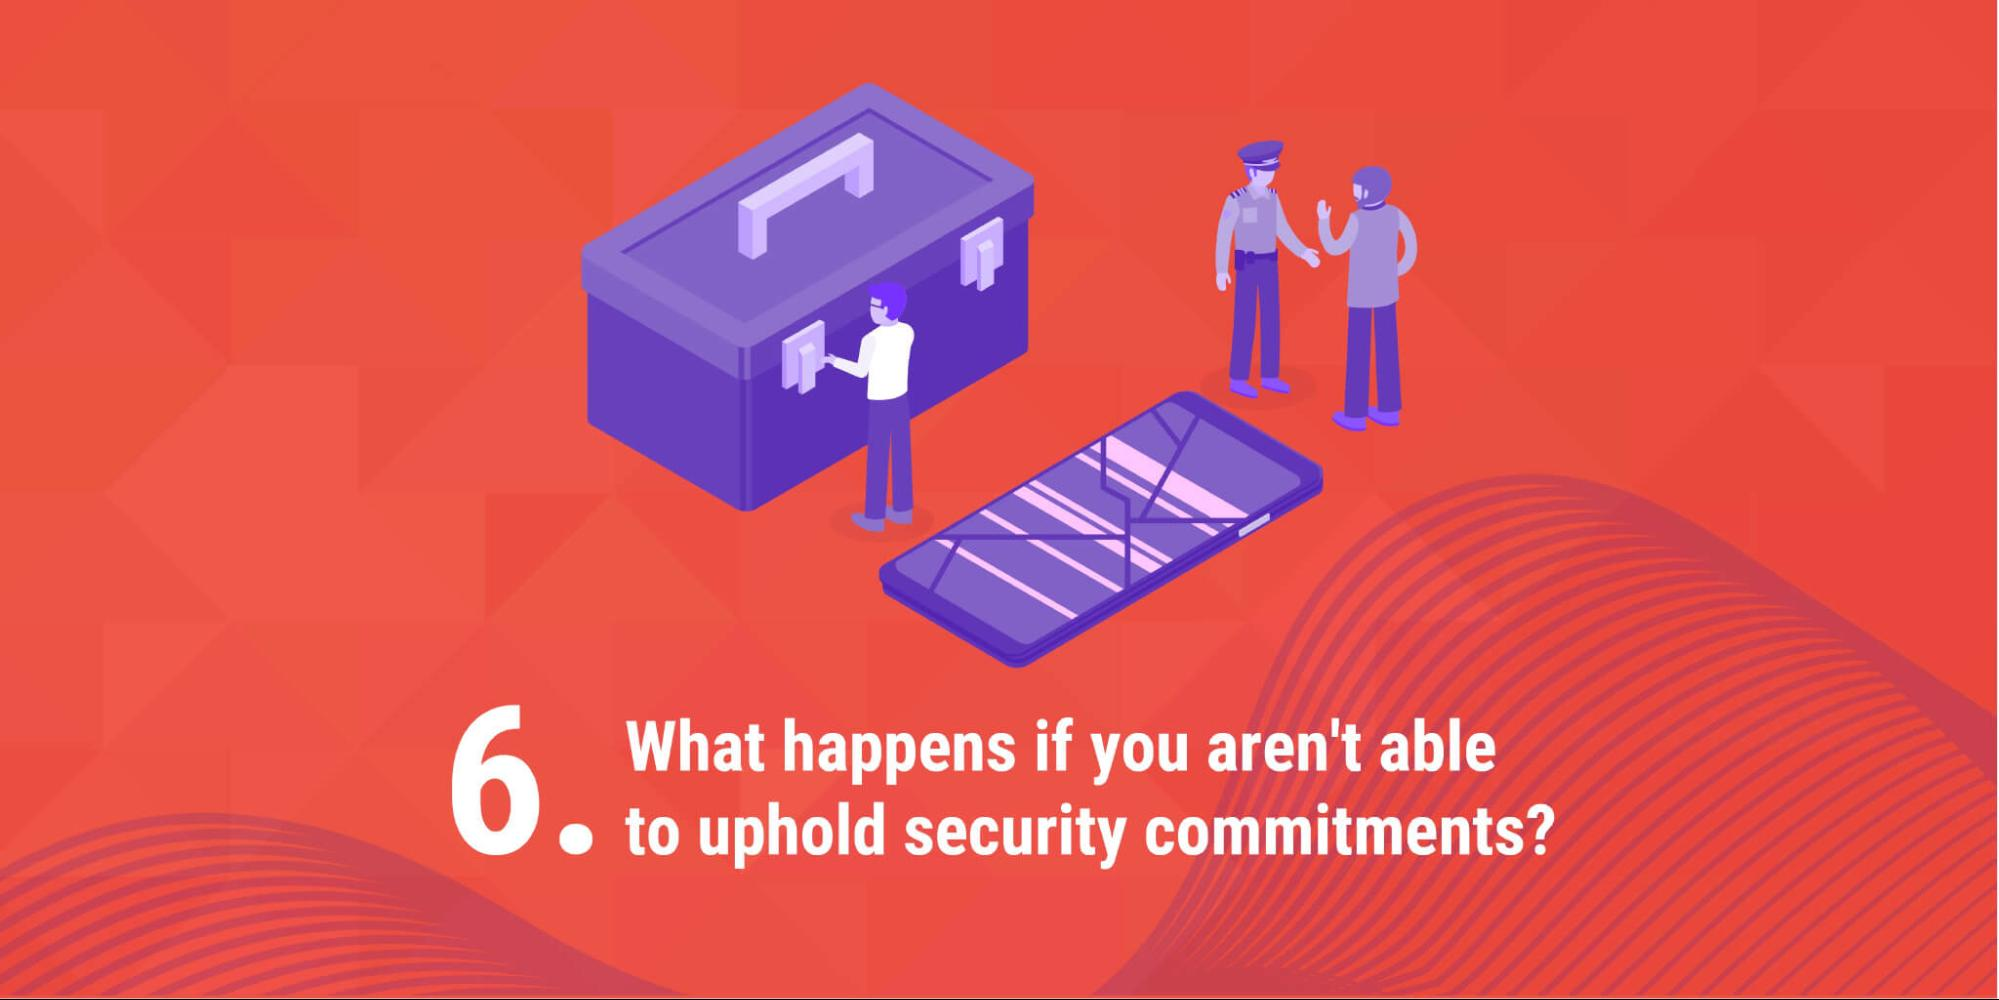 6. What happens if you aren't able to uphold security commitments?